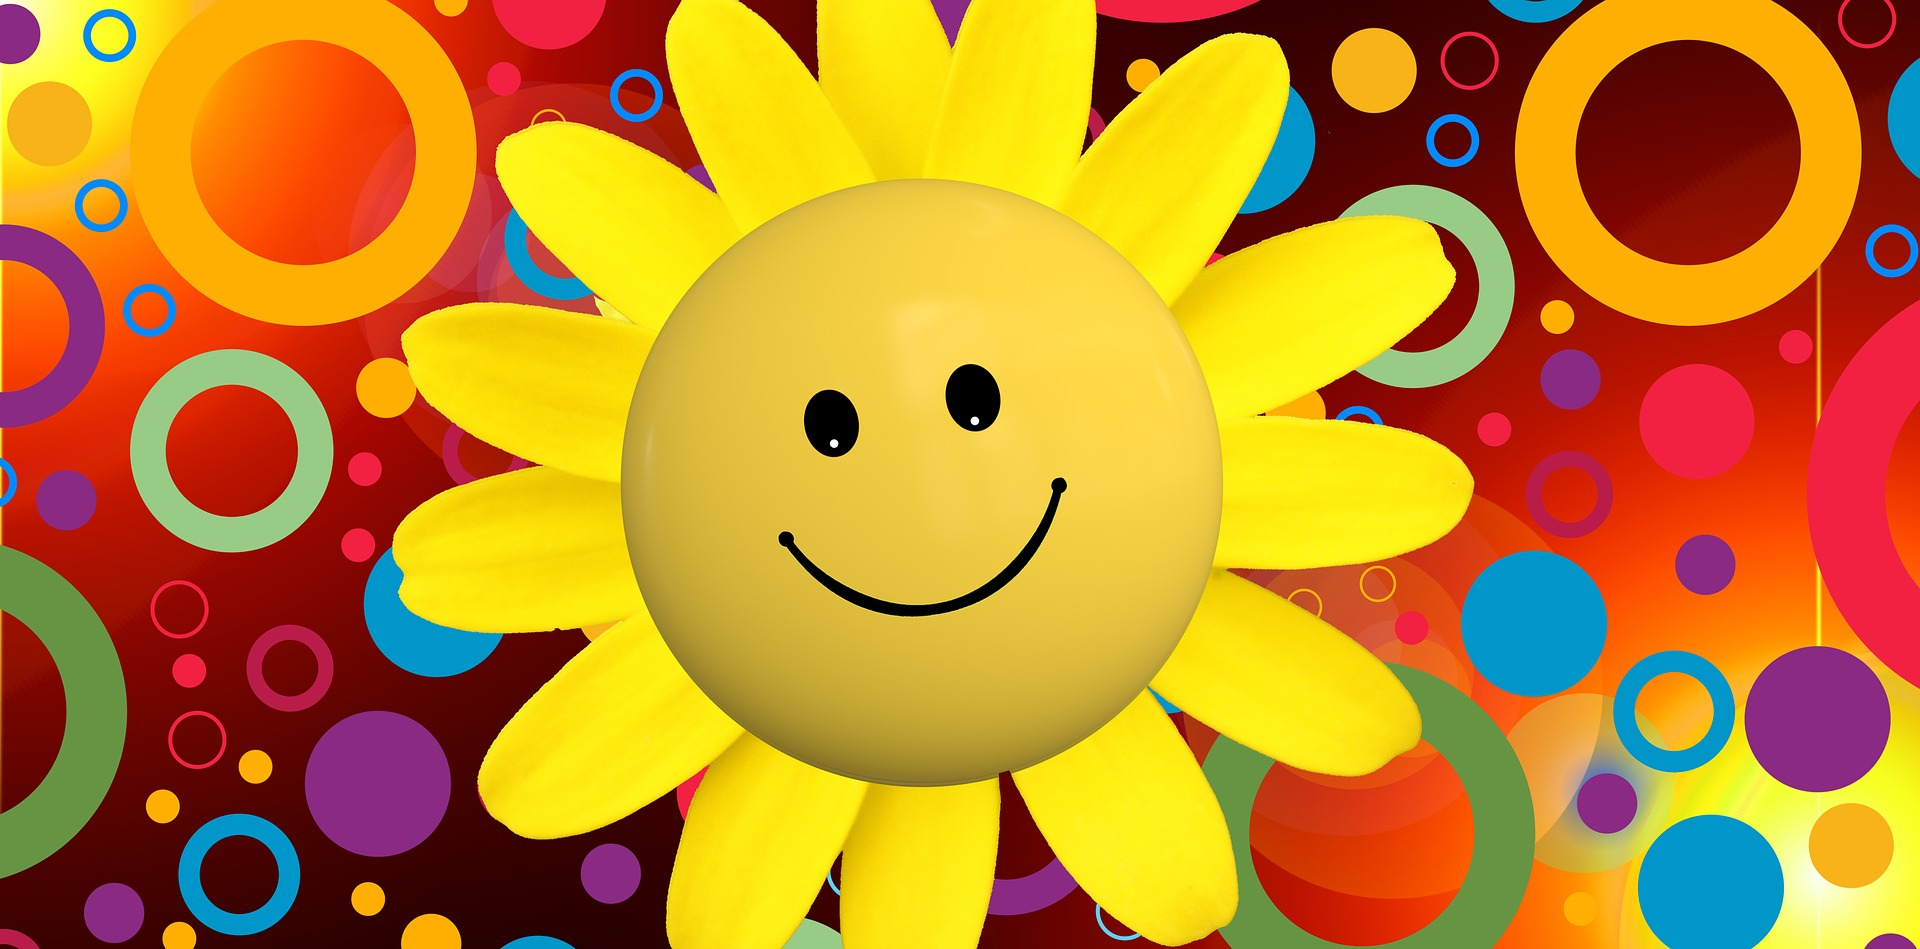 Be positive - The sun!